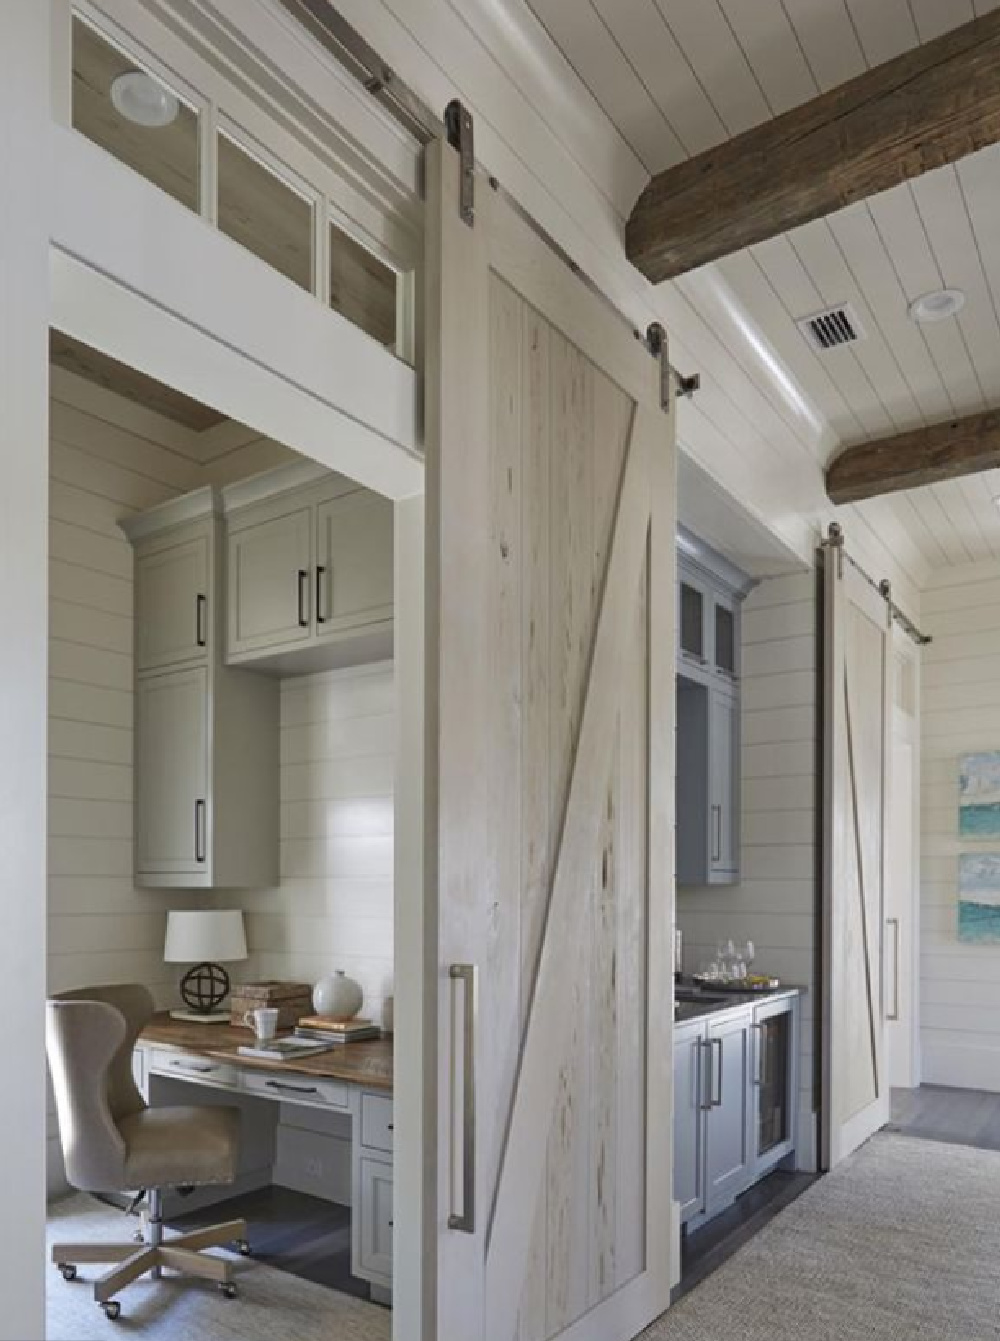 Home office with barn door, transom, and shiplap in a classic coastal home with architecture by Geoff Chick & Associates. #homeoffice #shiplap #coastalstyle